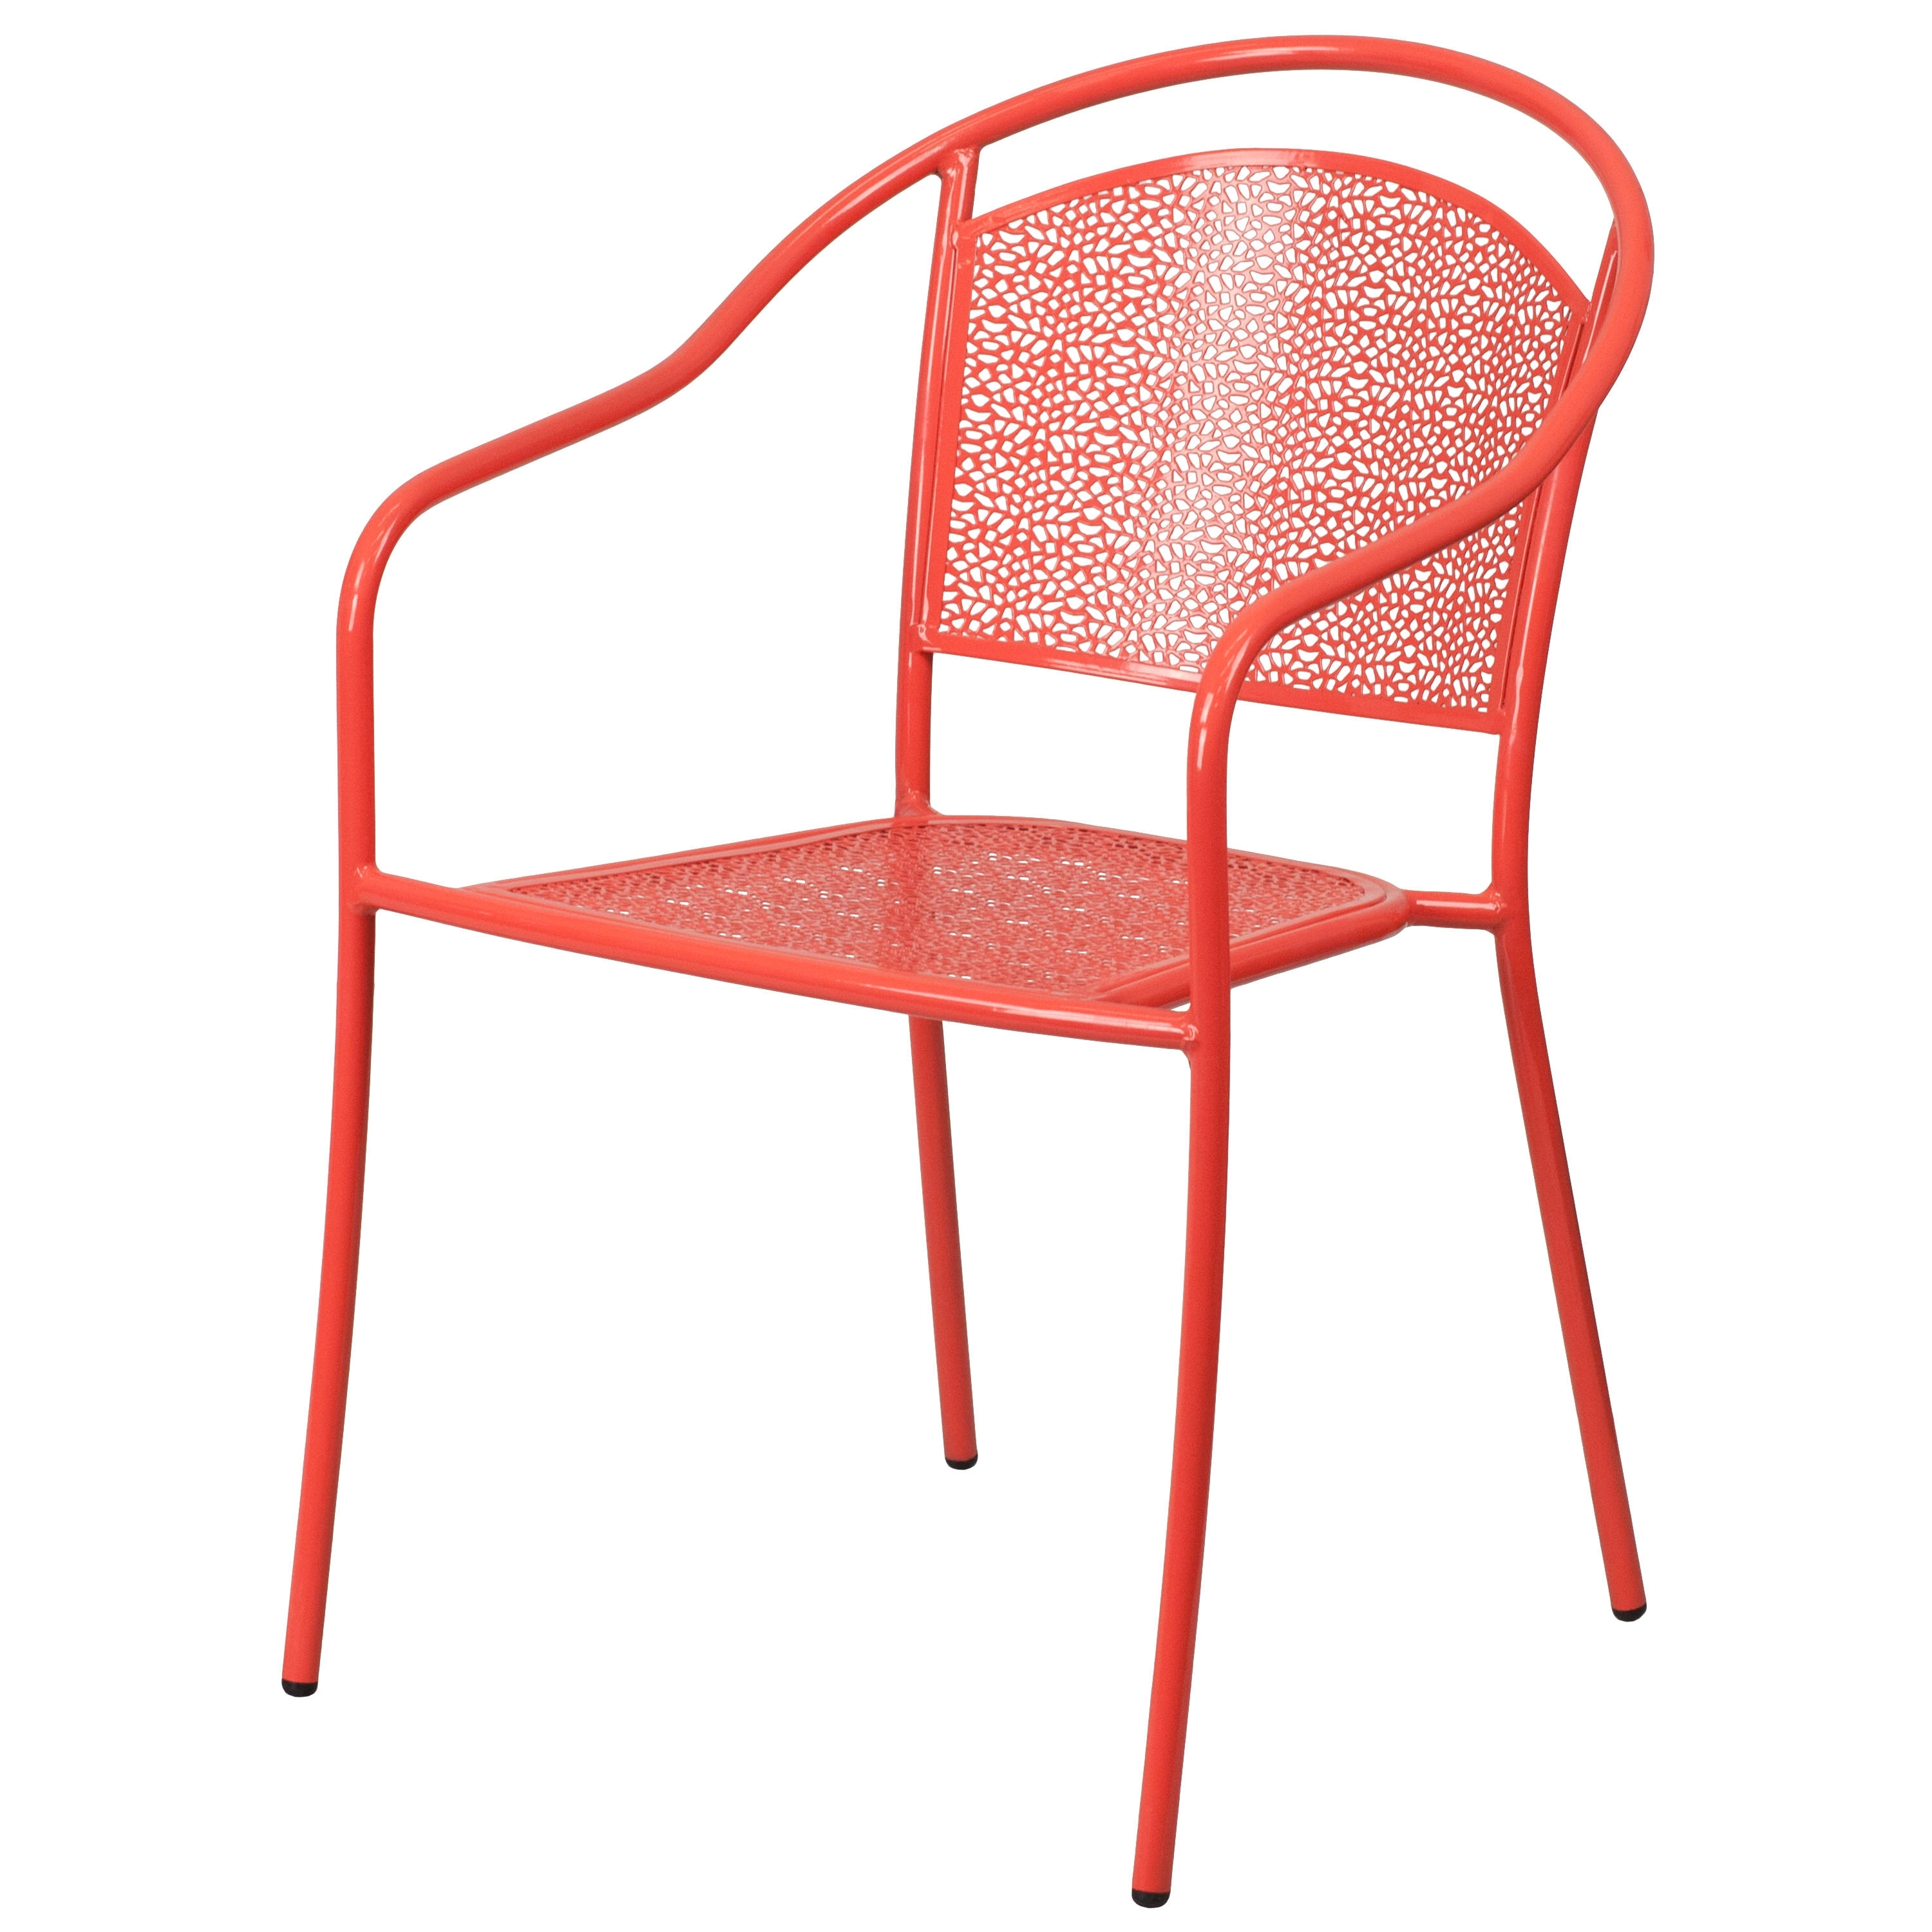 2018 Cora Ii Arm Chairs Throughout Flash Furniture Coral Indoor Outdoor Patio Arm Chair With Round Back (View 20 of 20)